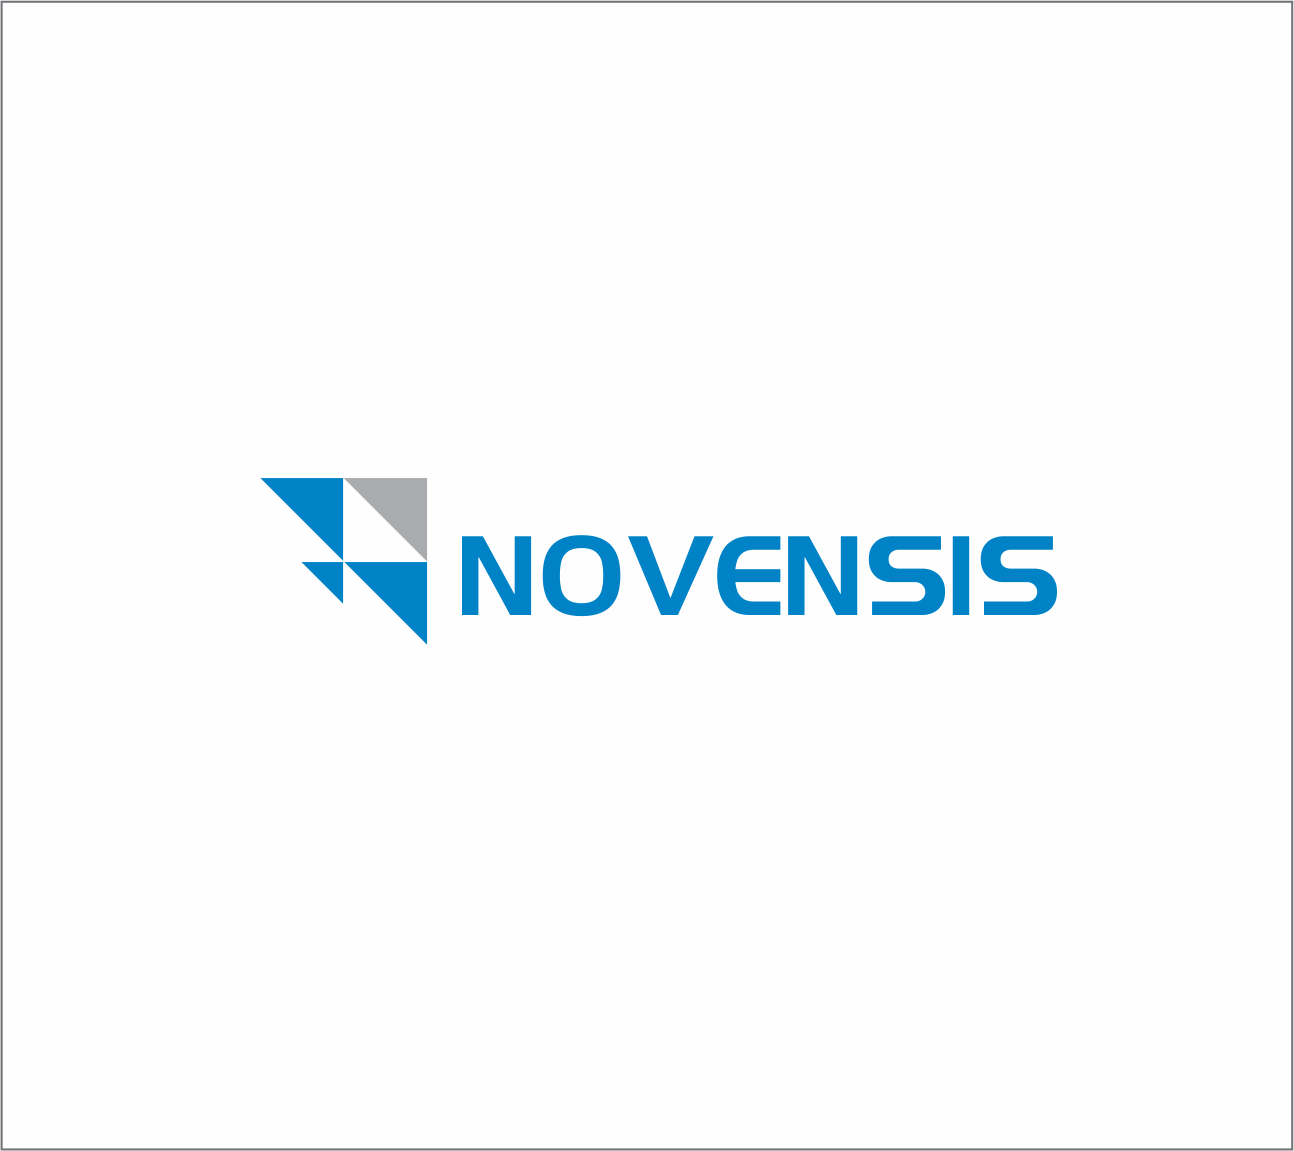 Logo Design by Armada Jamaluddin - Entry No. 116 in the Logo Design Contest Novensis Logo Design.